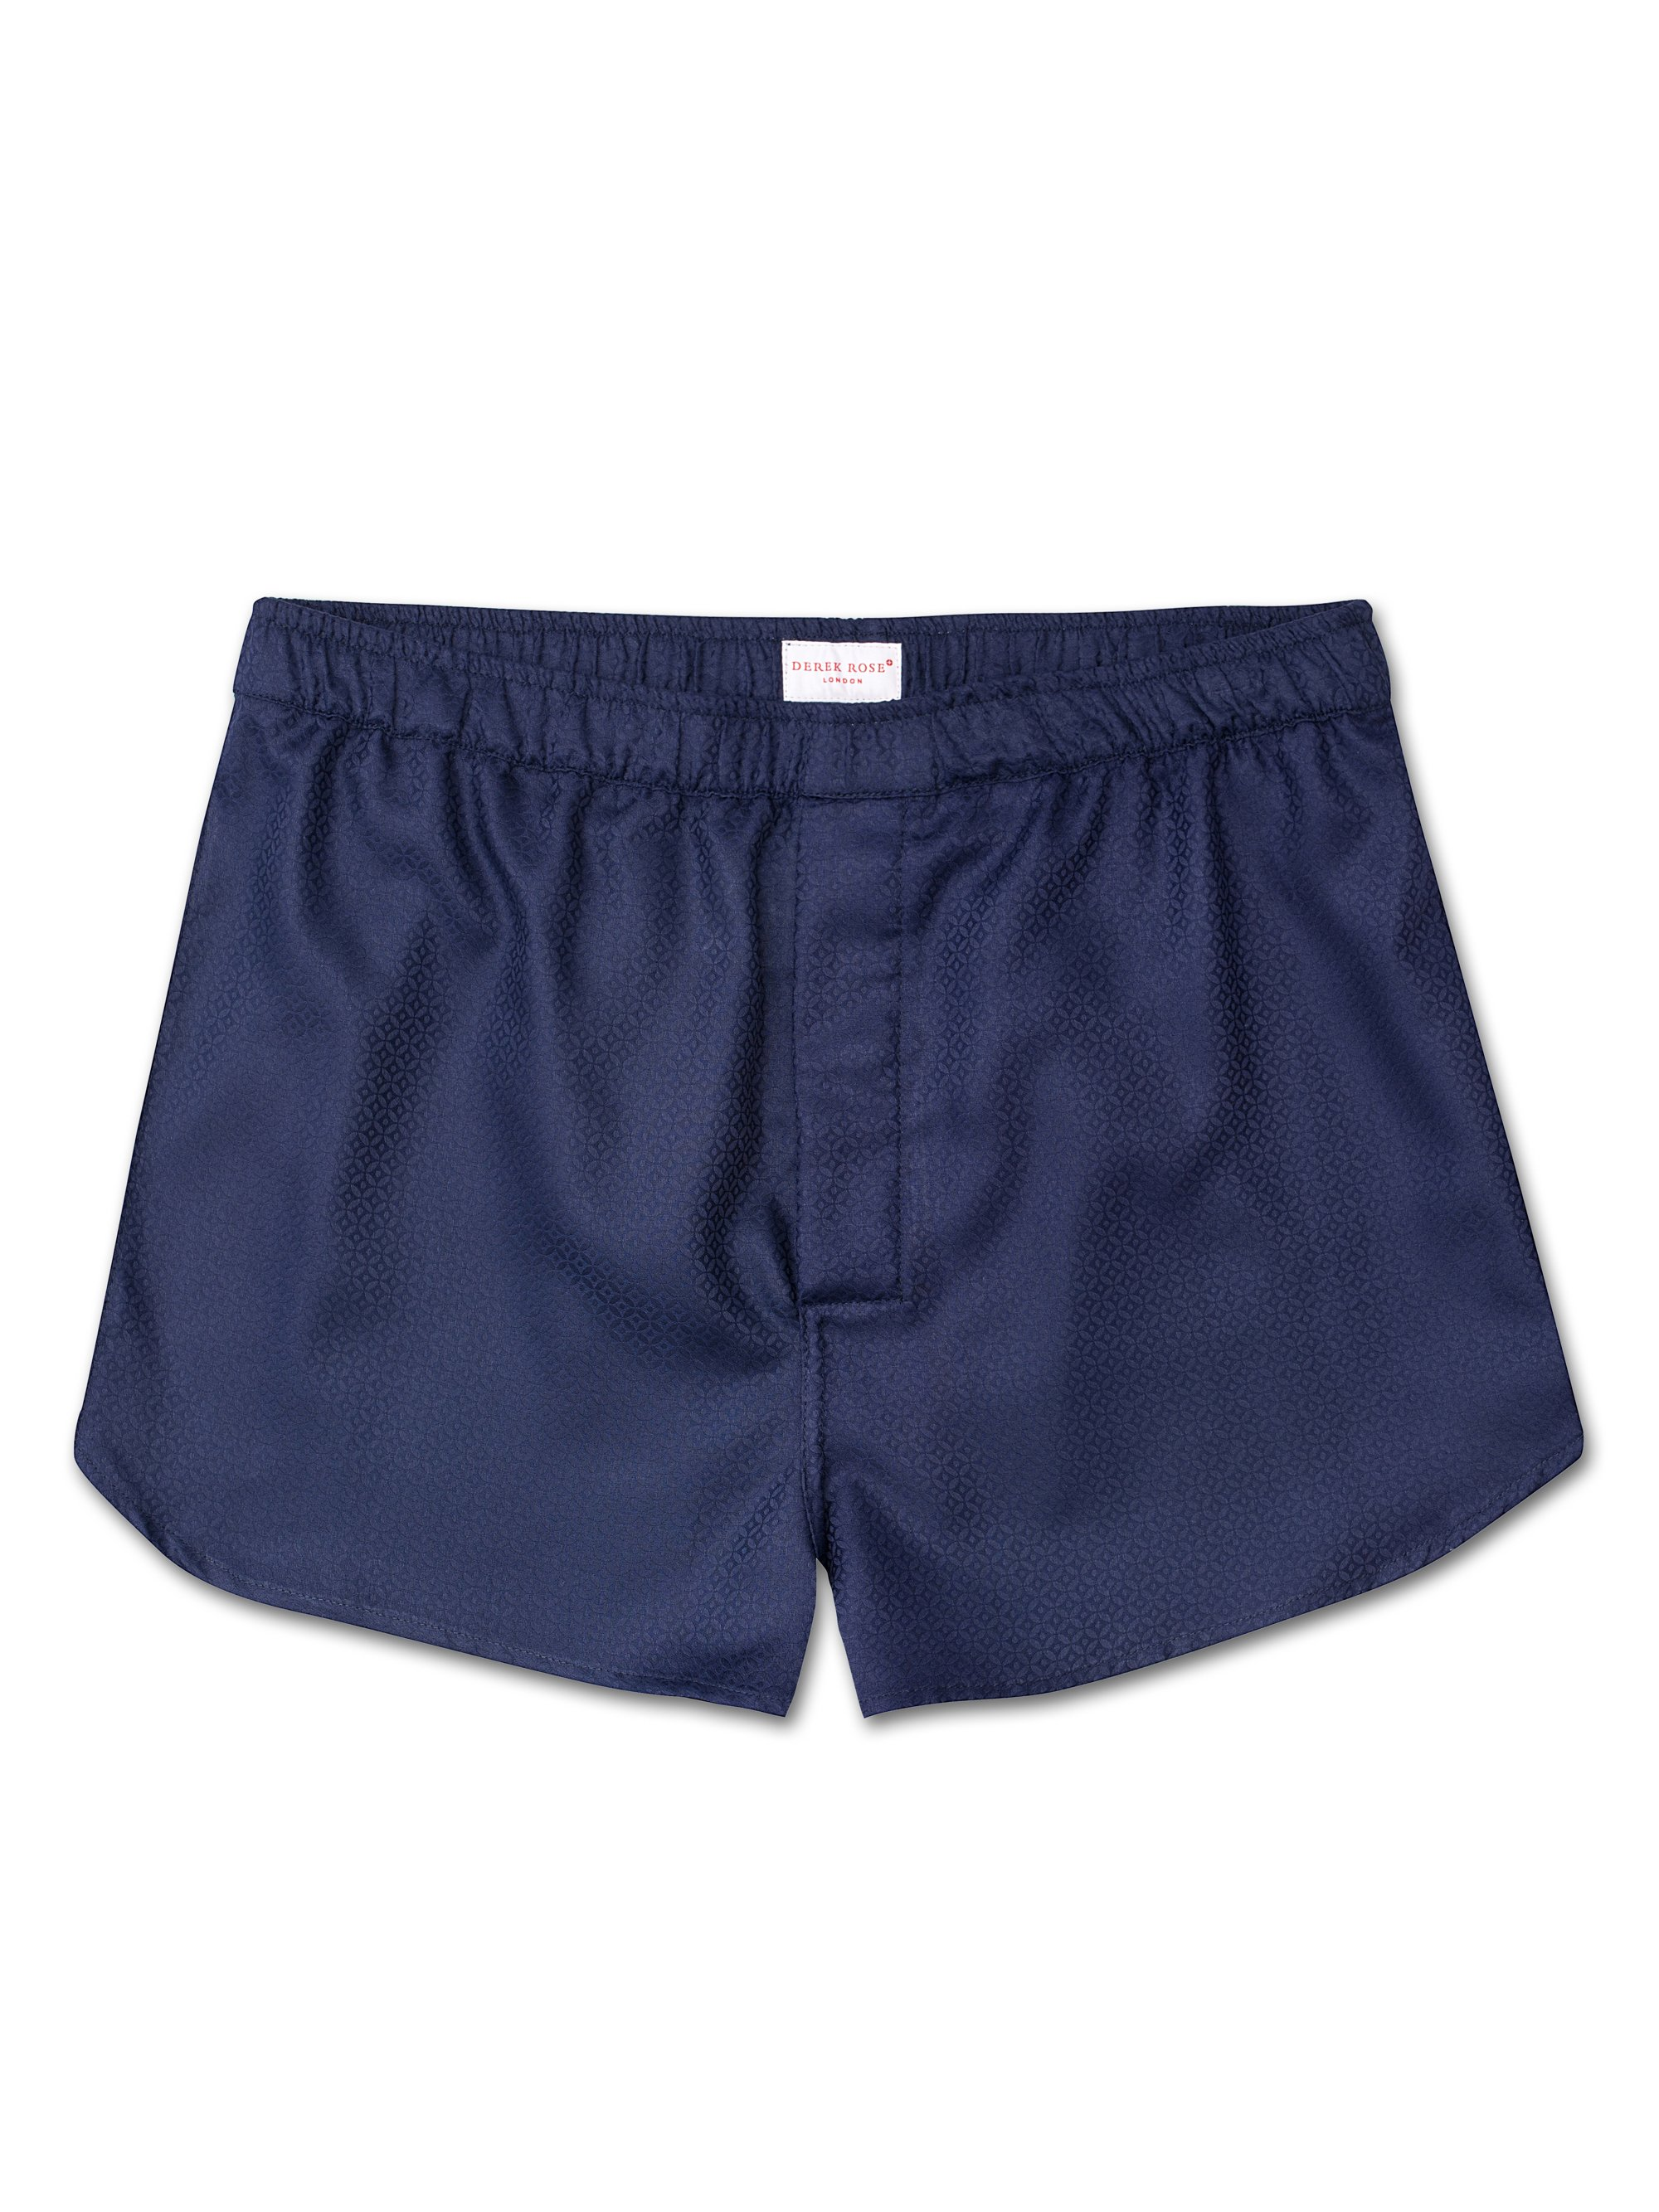 Men's Modern Fit Boxer Shorts Lombard 6 Cotton Jacquard Navy